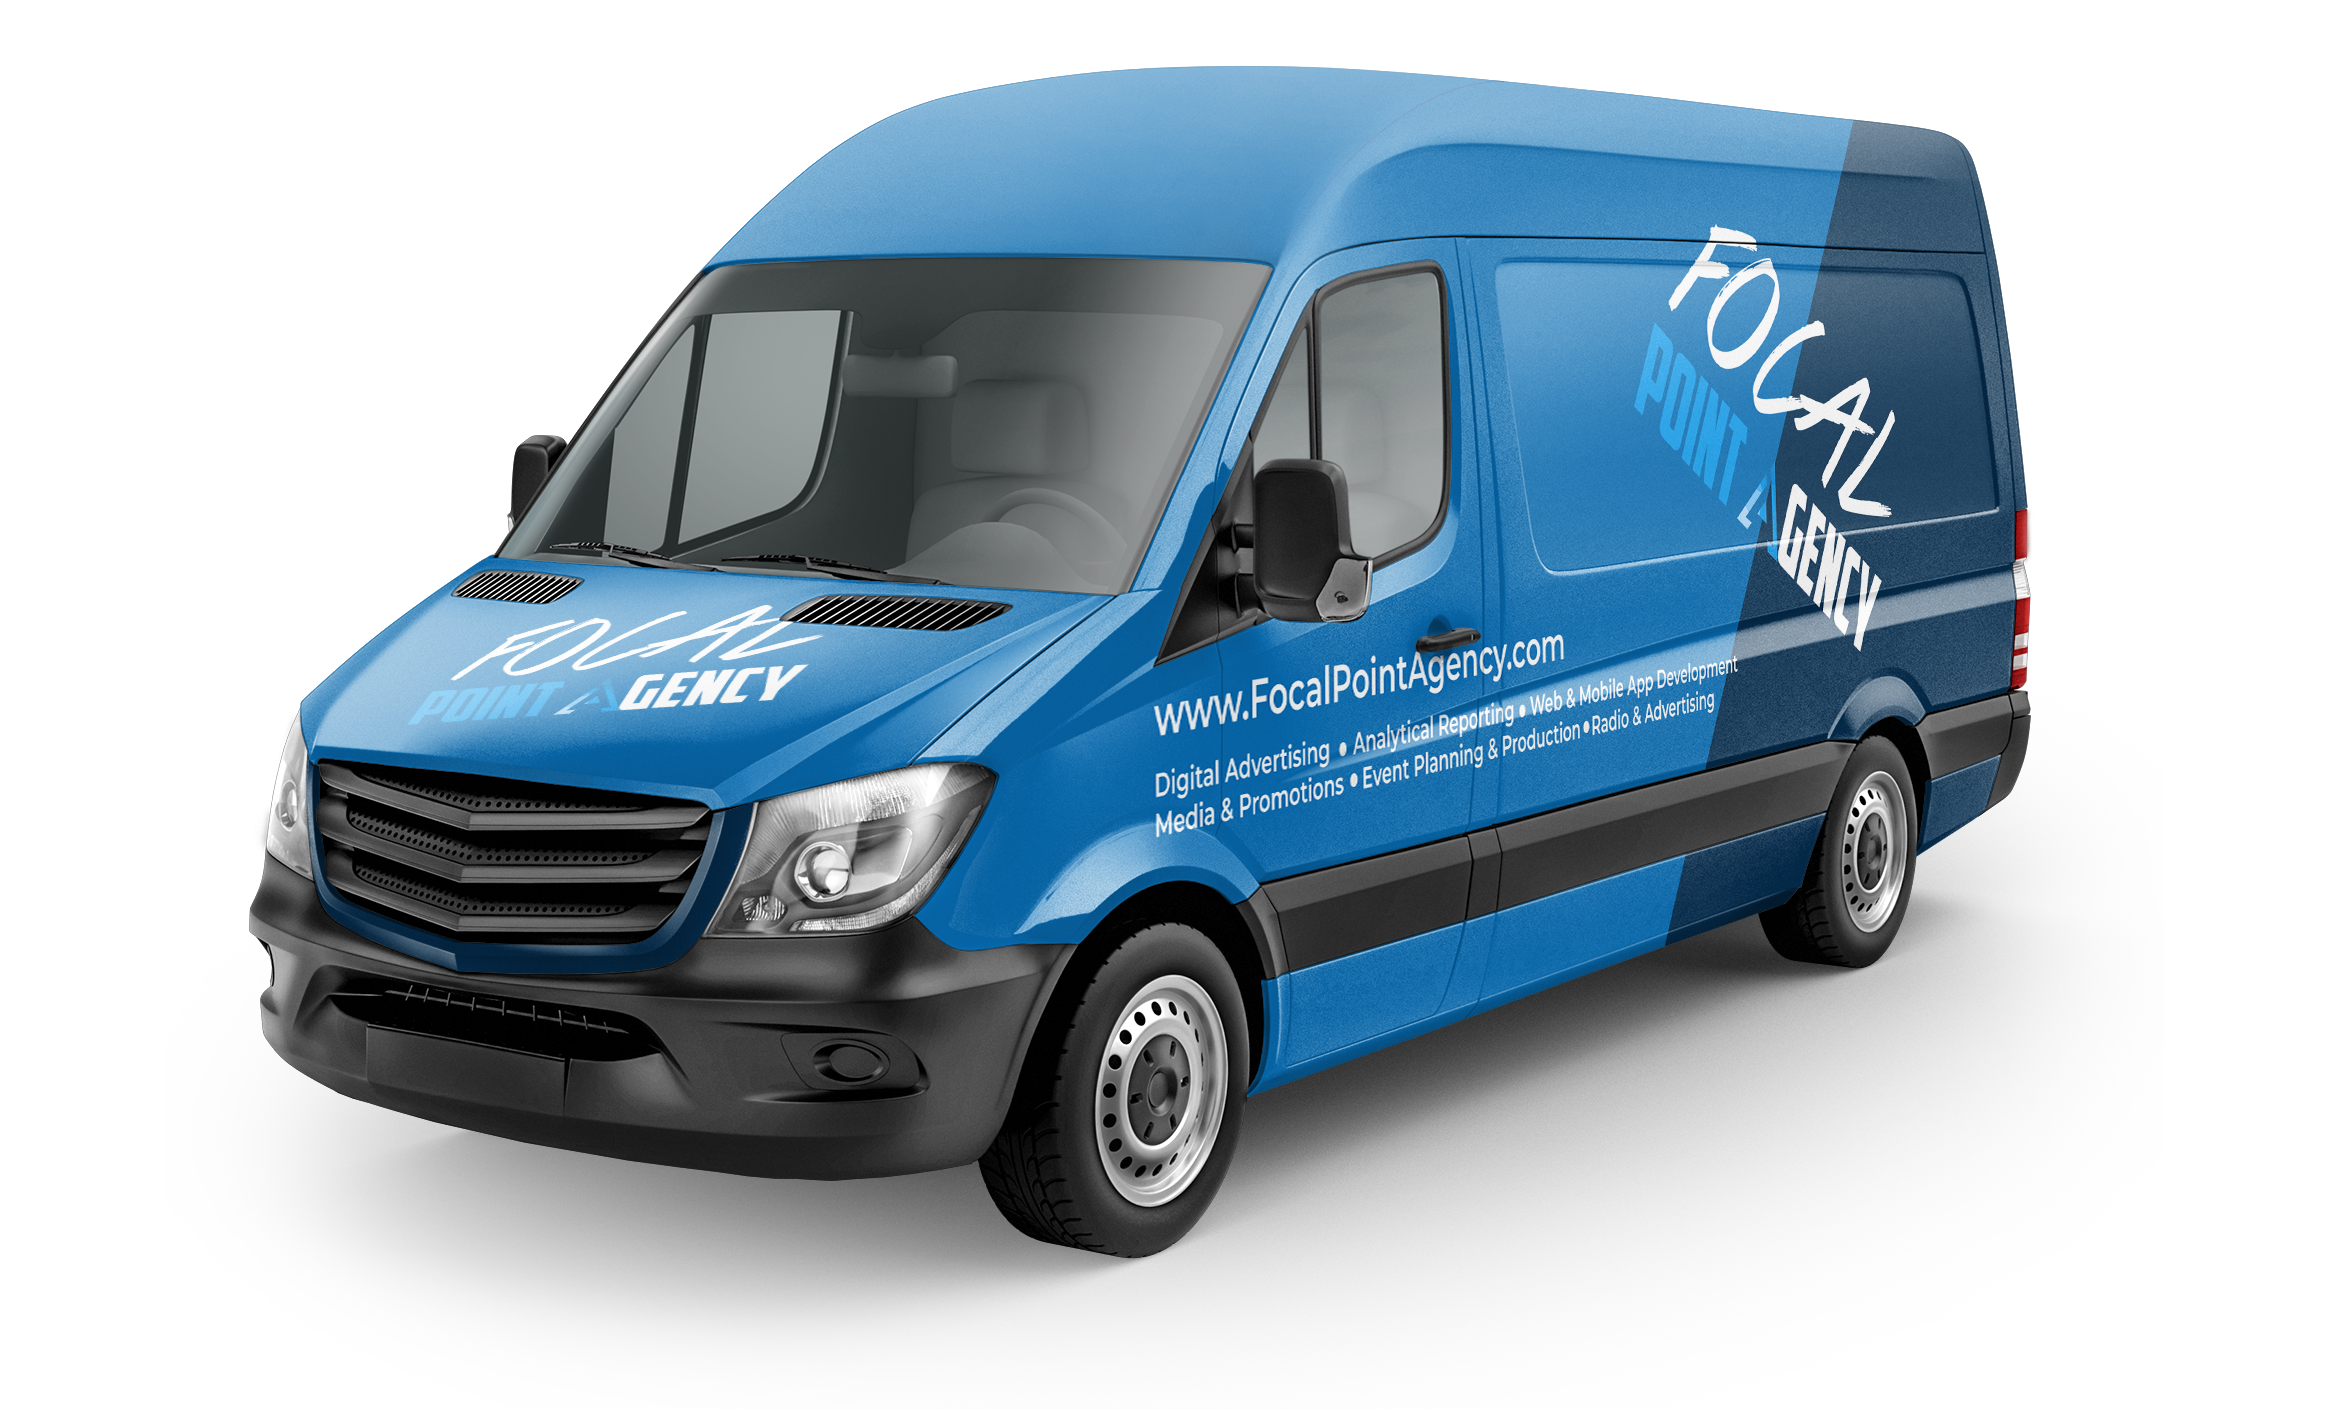 Focal Point Agency Mobile Unit